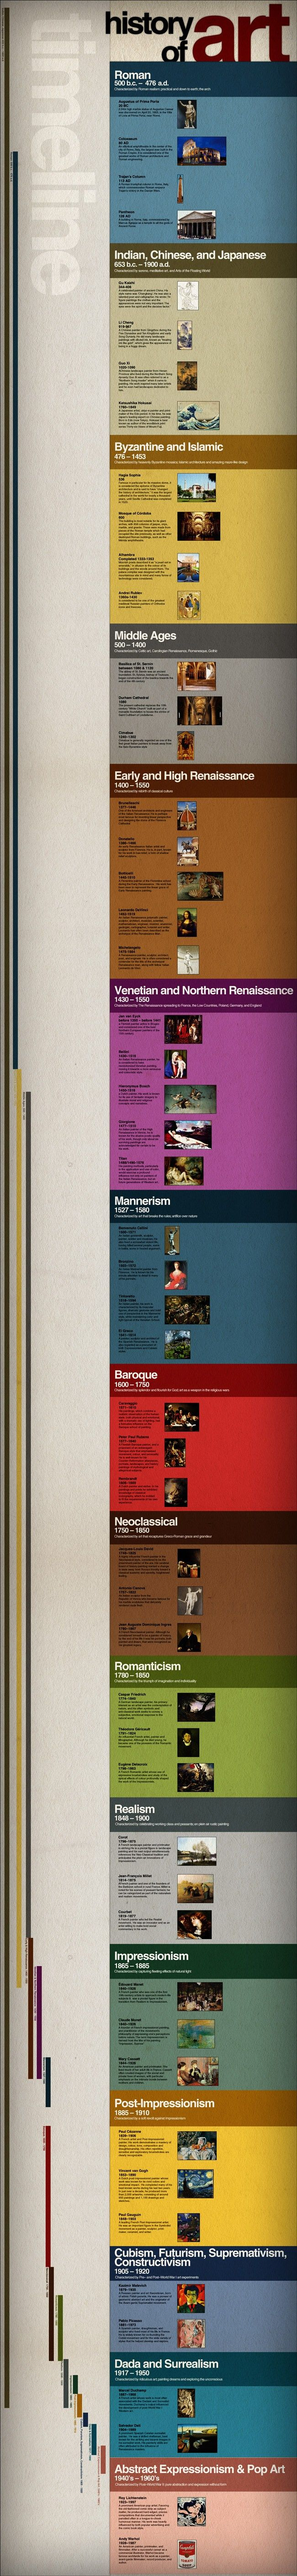 Timeline History Of Art - Tipsögraphic                                                                                                                                                                                 More